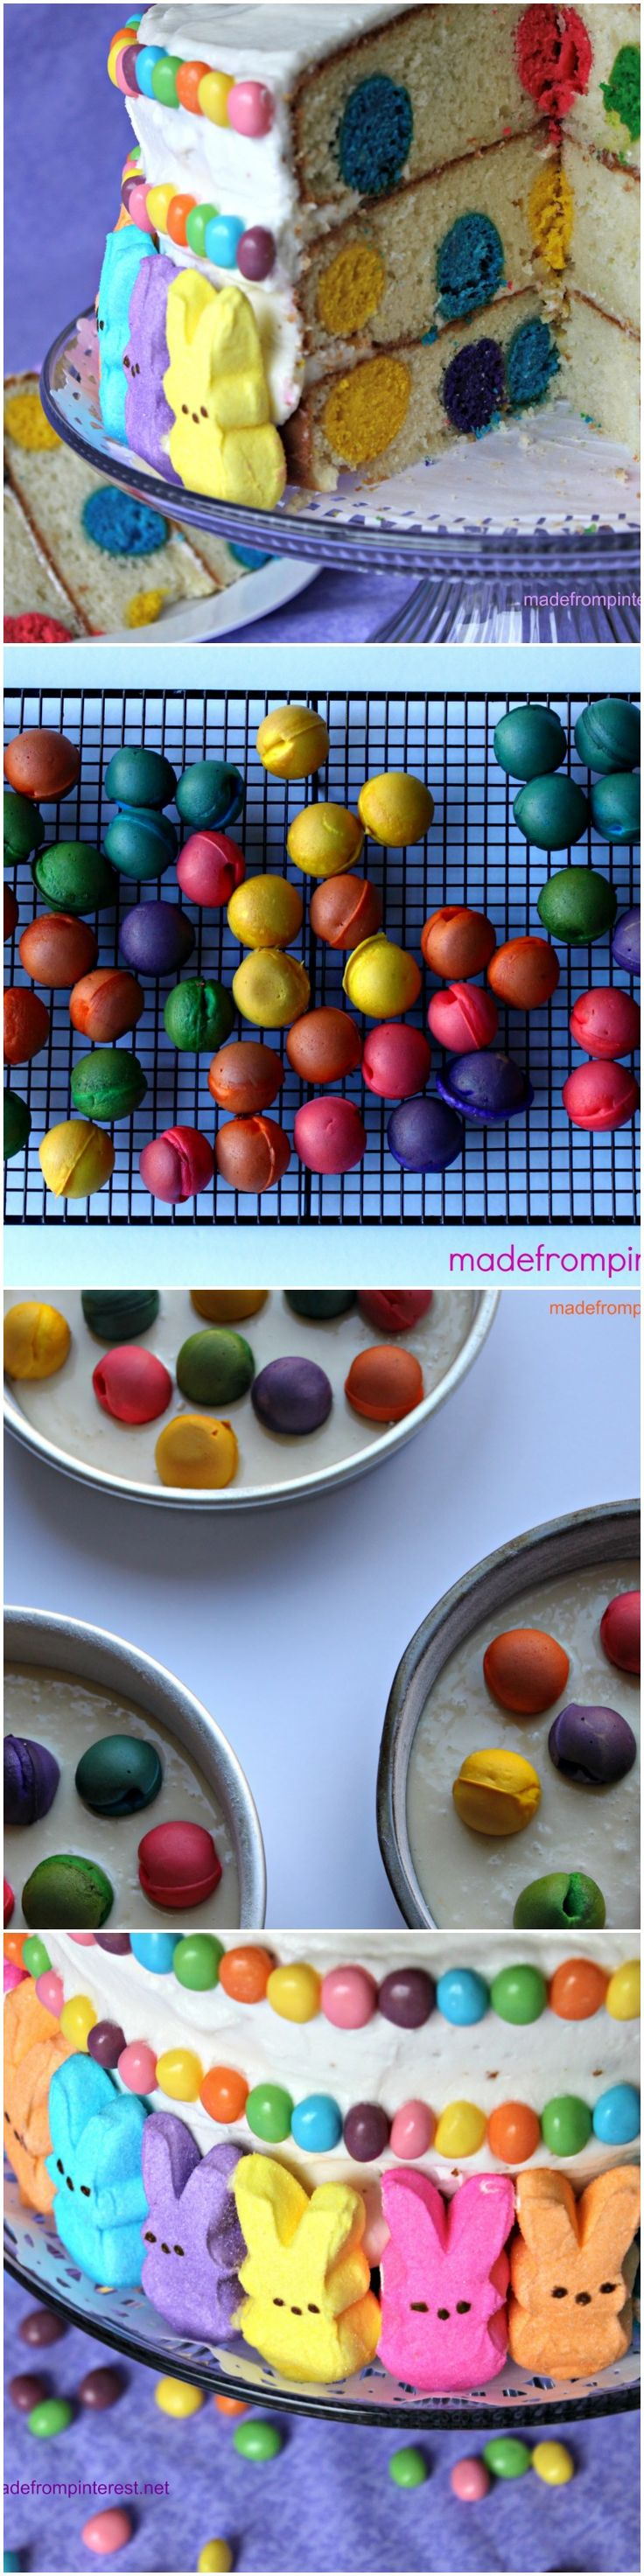 Polka Dot Cake - This is going to be a hit for spring parties and Easter!